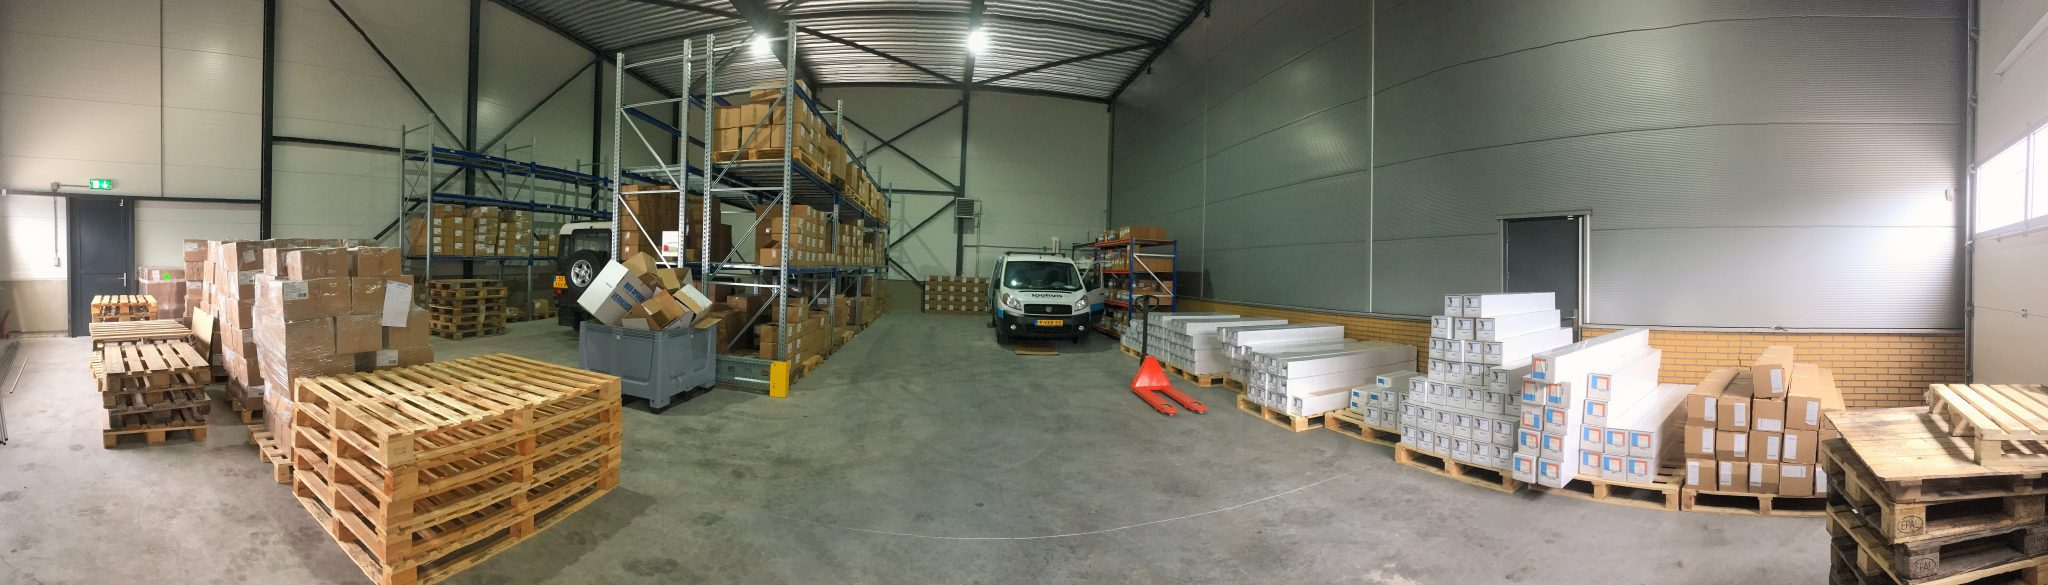 Image of the Colgraphix warehouse in Goor, the Netherlands